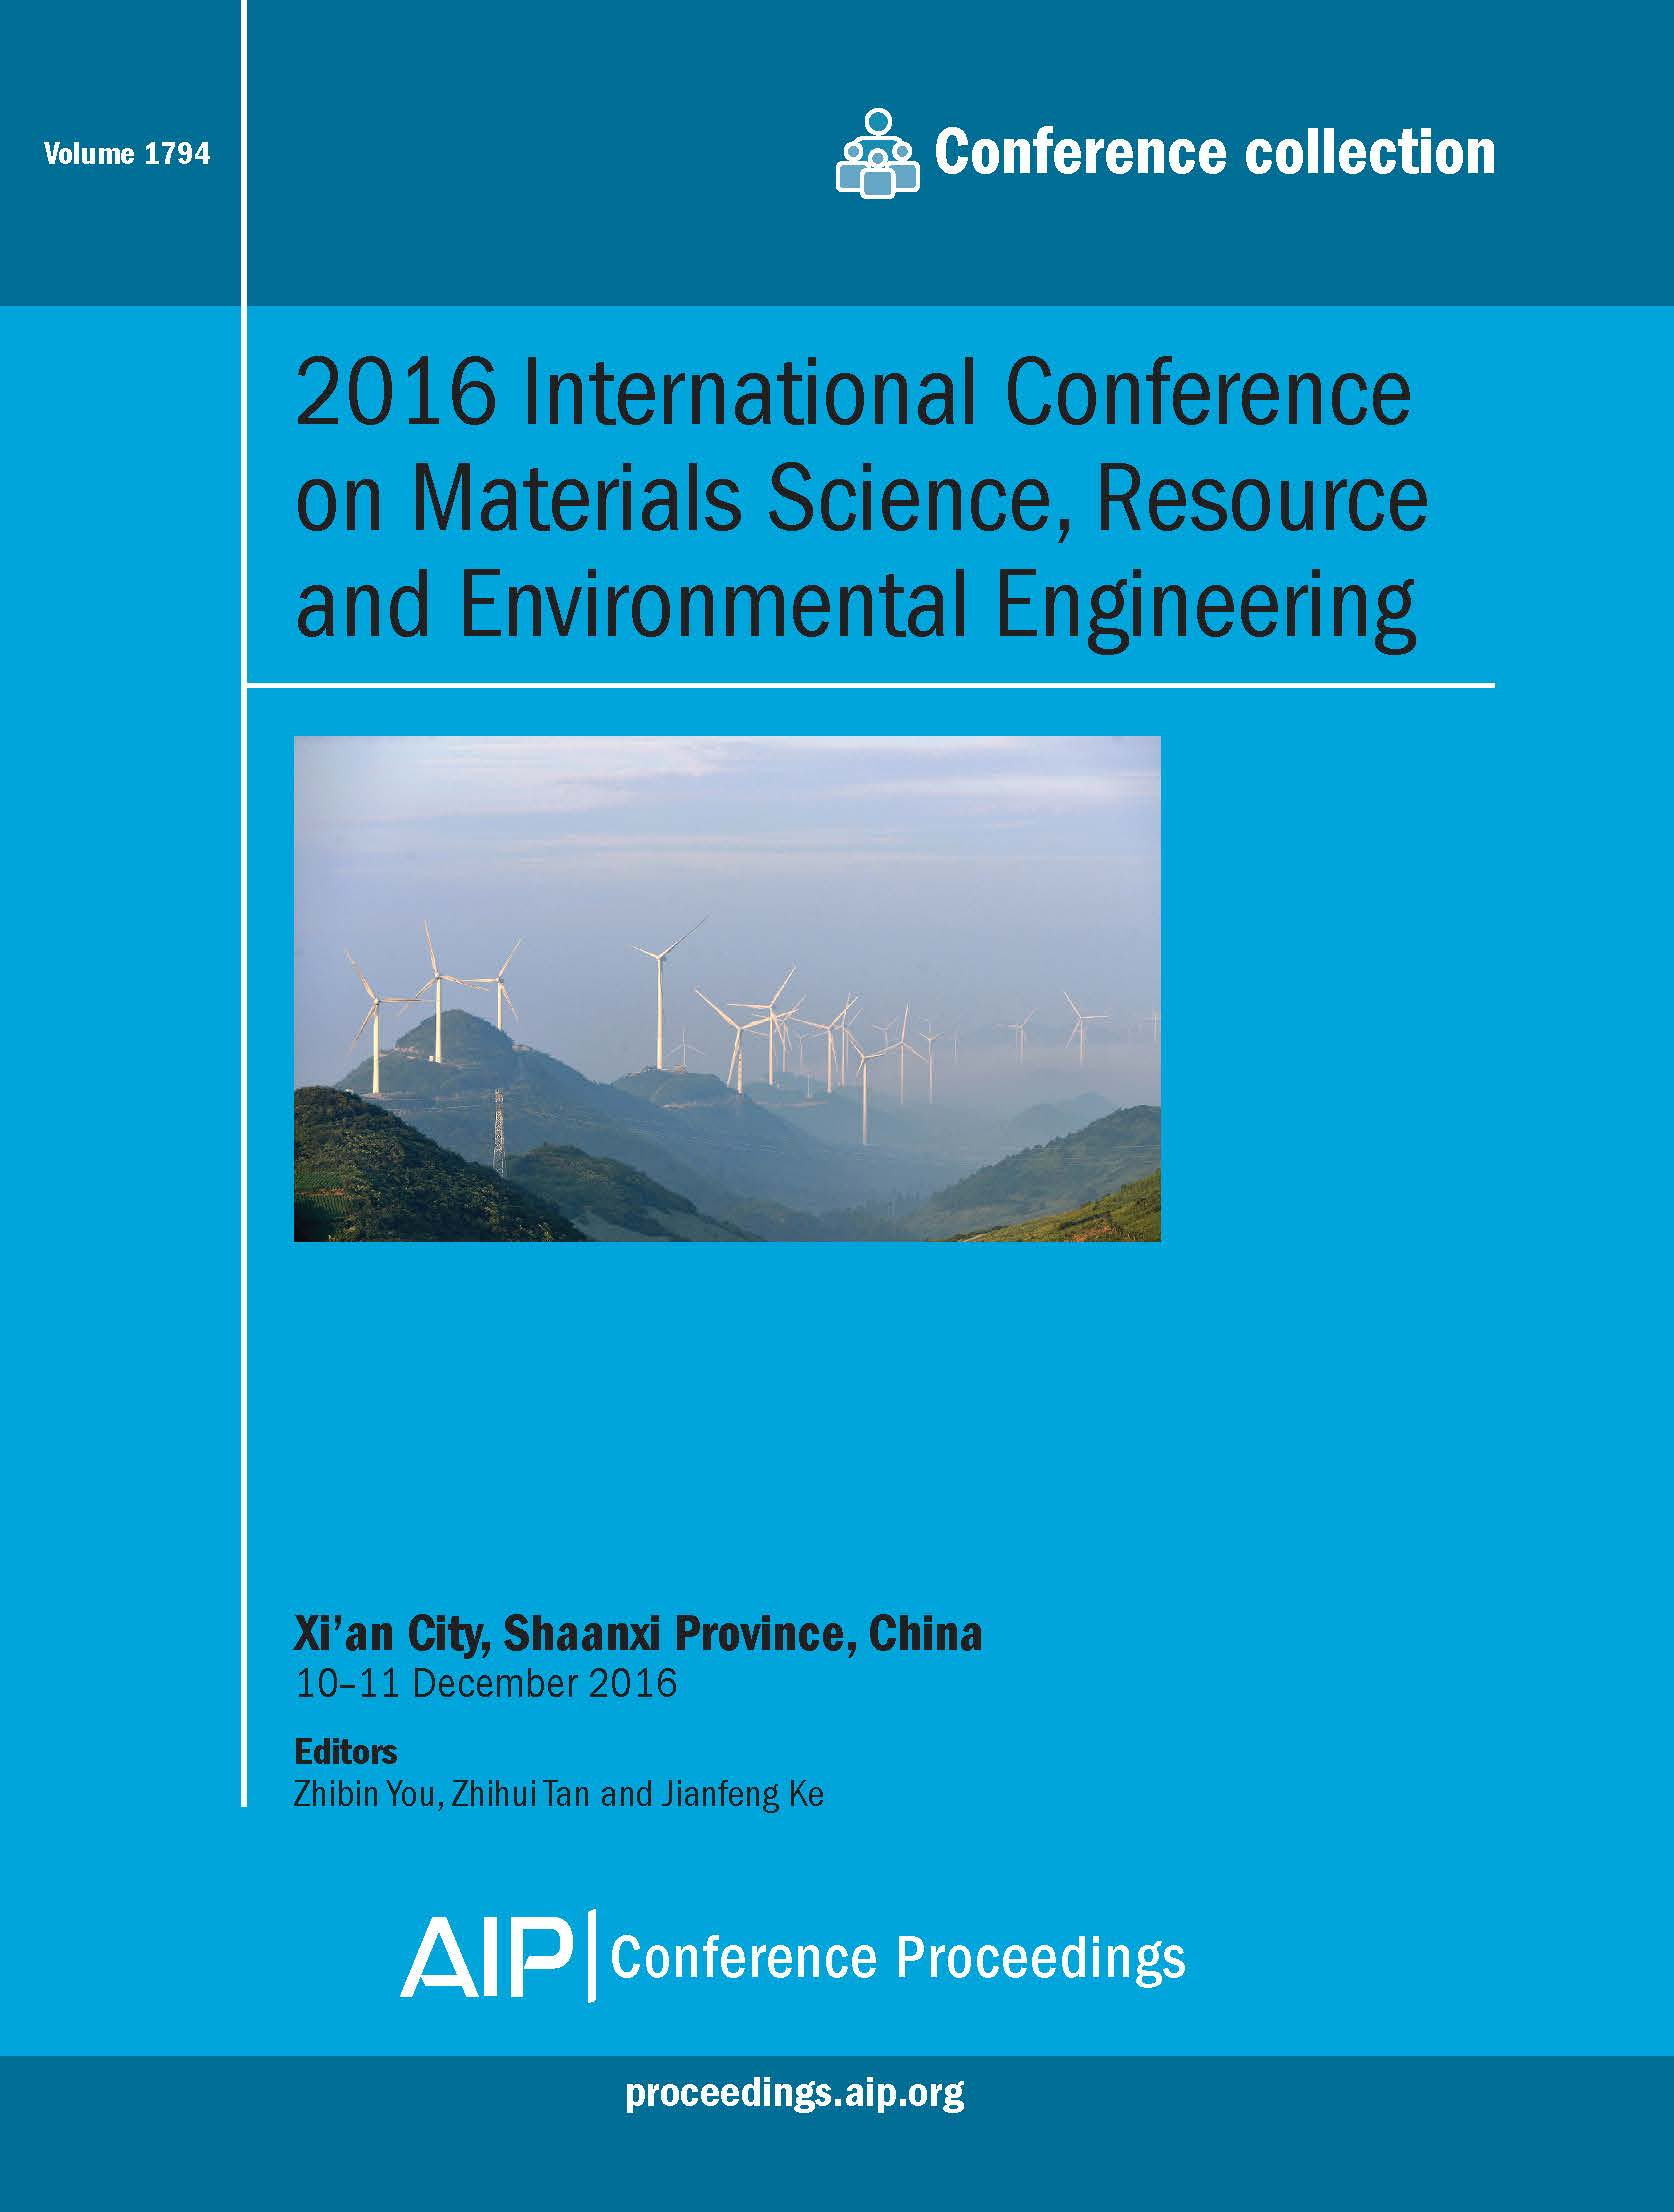 Volume 1794: 2016 International Conference on Materials Science